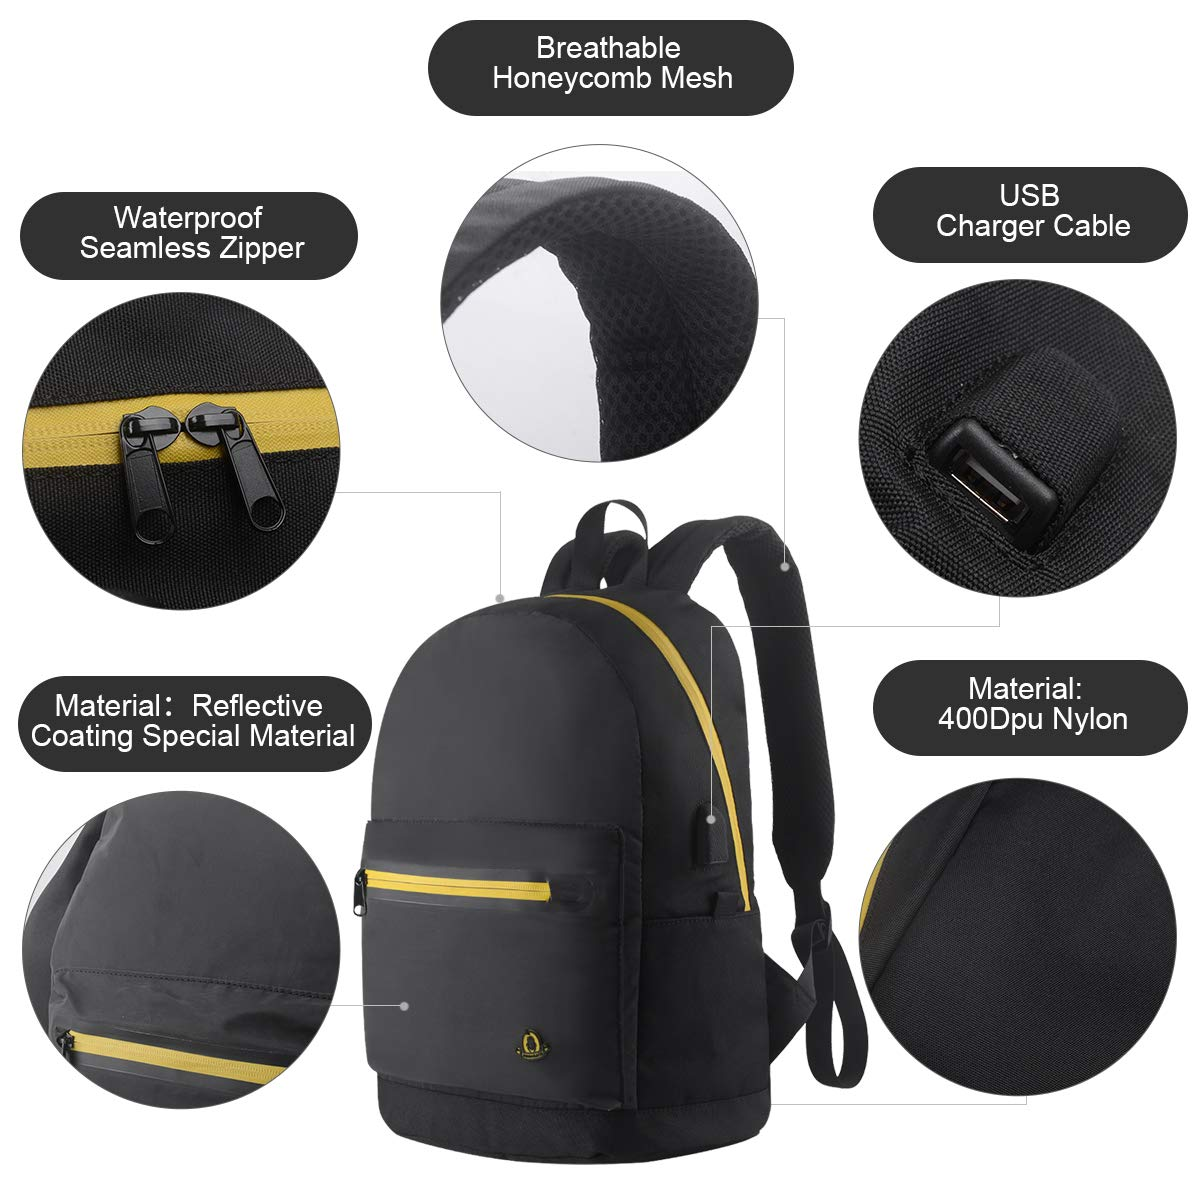 Business Laptop Reflective Backpack,Travel Anti Theft Computer Backpack with USB Charging Port, Waterproof Night Light Reflective College School Bag for Women Men (Black)